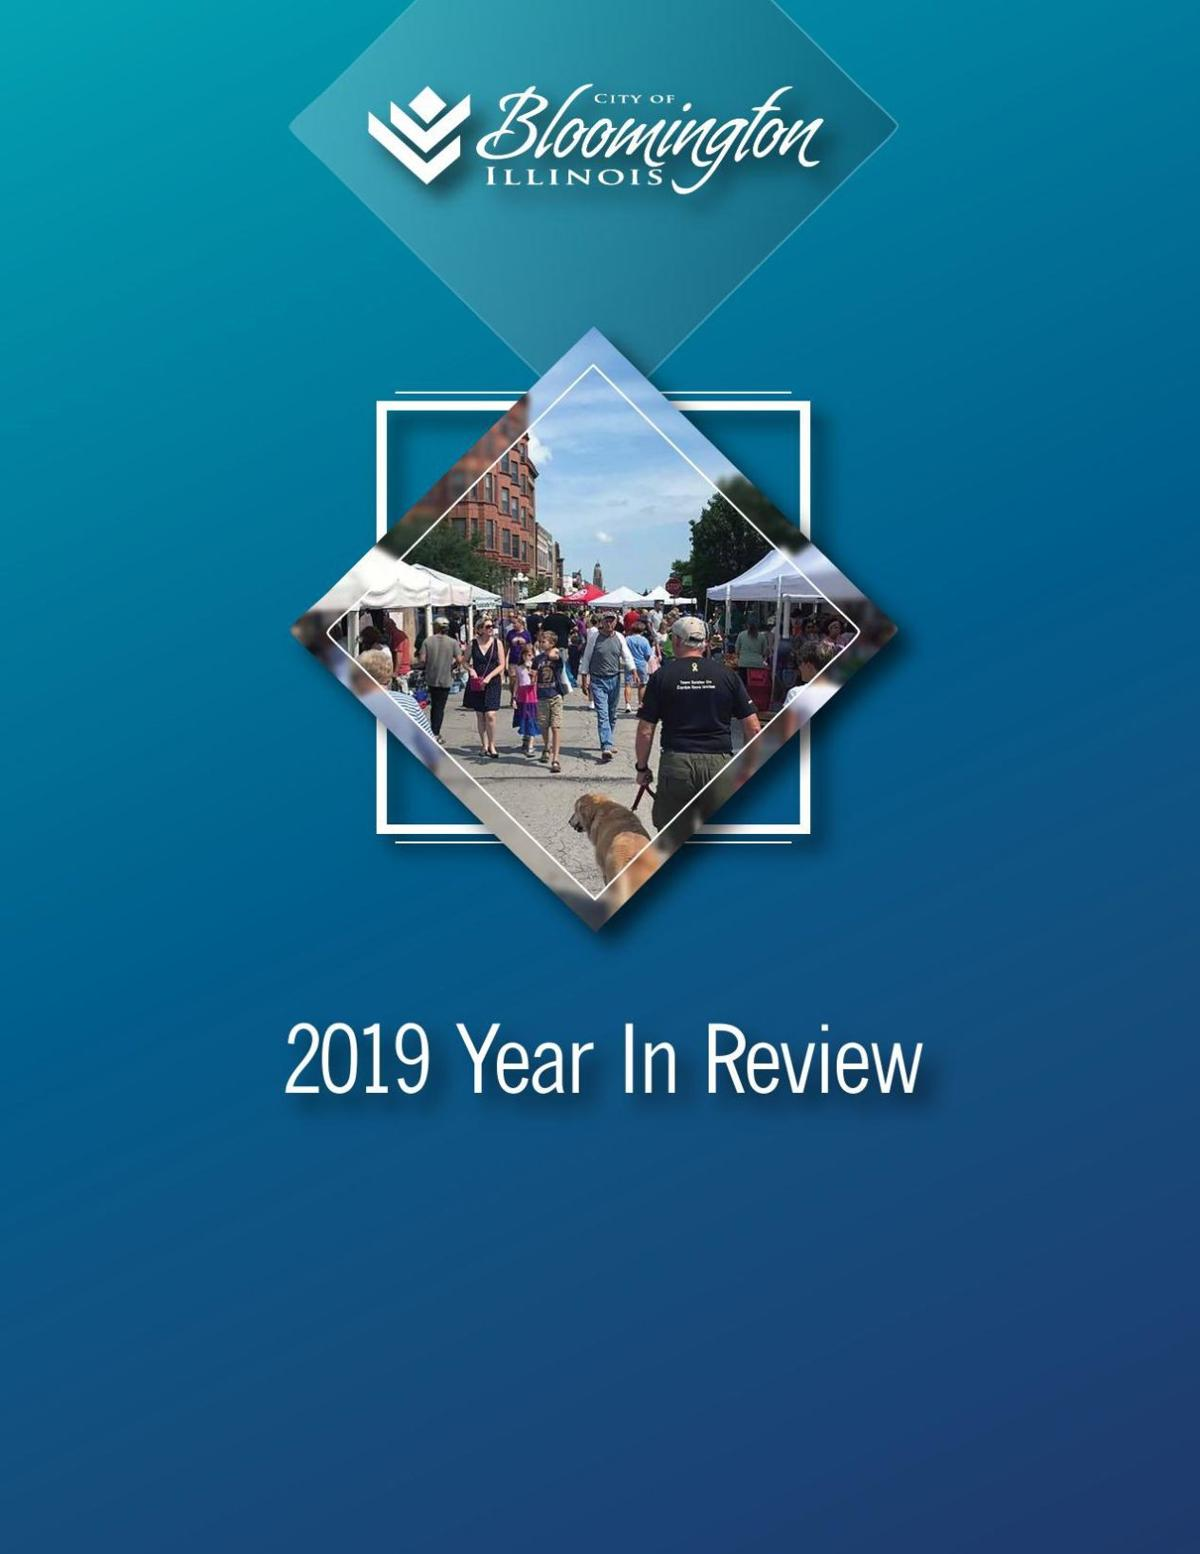 City manager's report on 2019 accomplishments